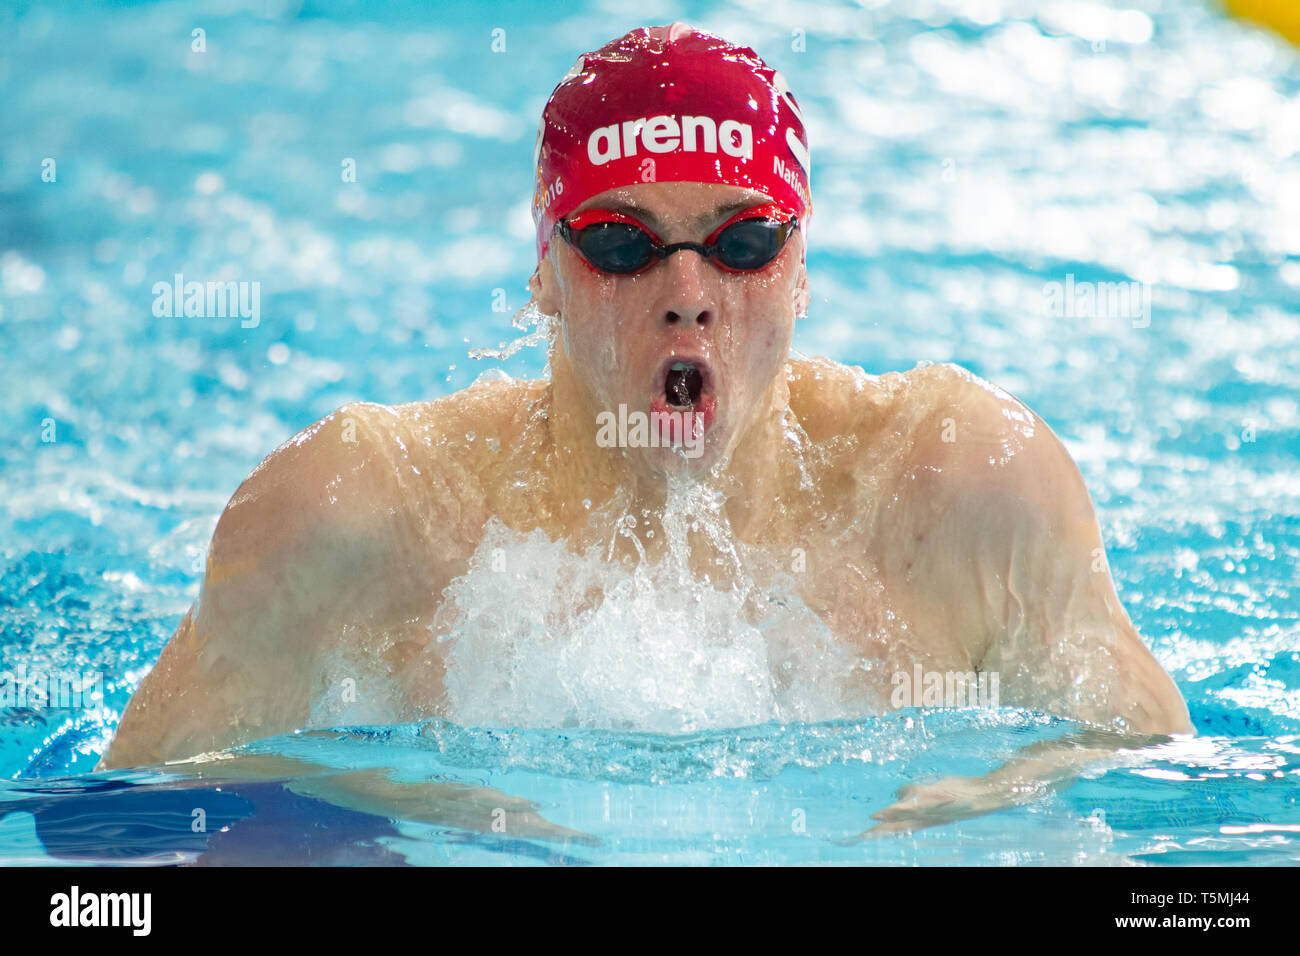 Zak Logue (City of Sunderland) in action during the men's transition 400 metres individual medley final, during Day 3 of the 2019 British Swimming Cha - Stock Image